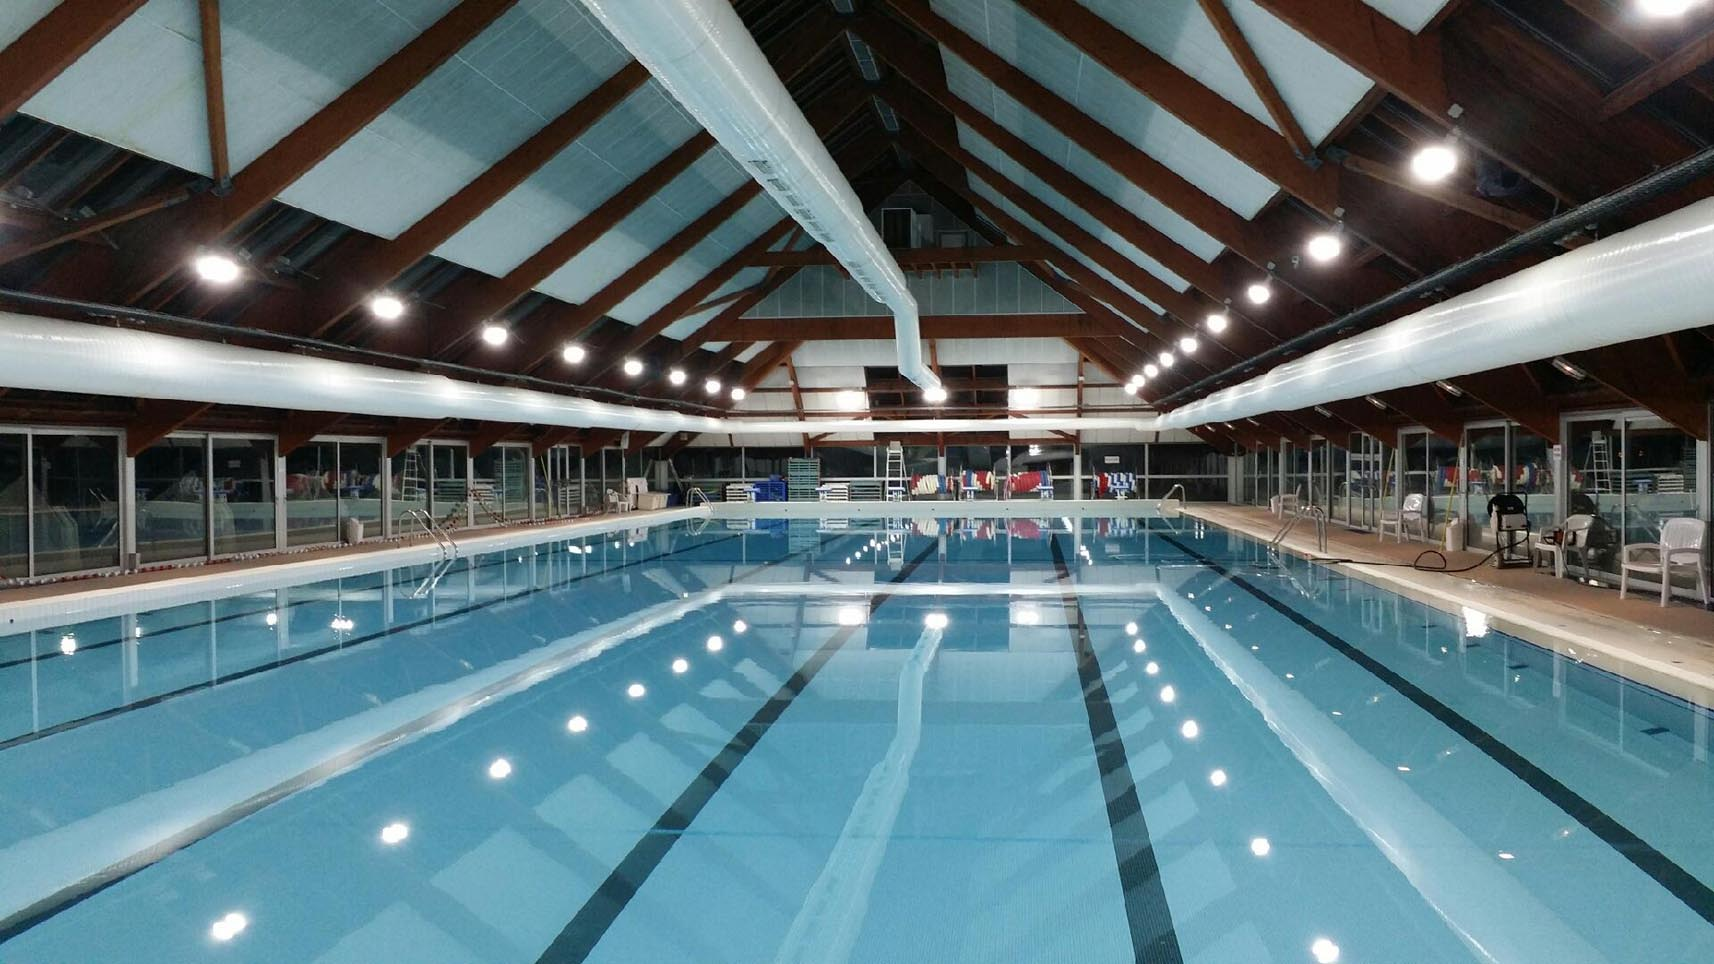 Piscine du chesnay 78 yvelines nlx for Piscine yvelines